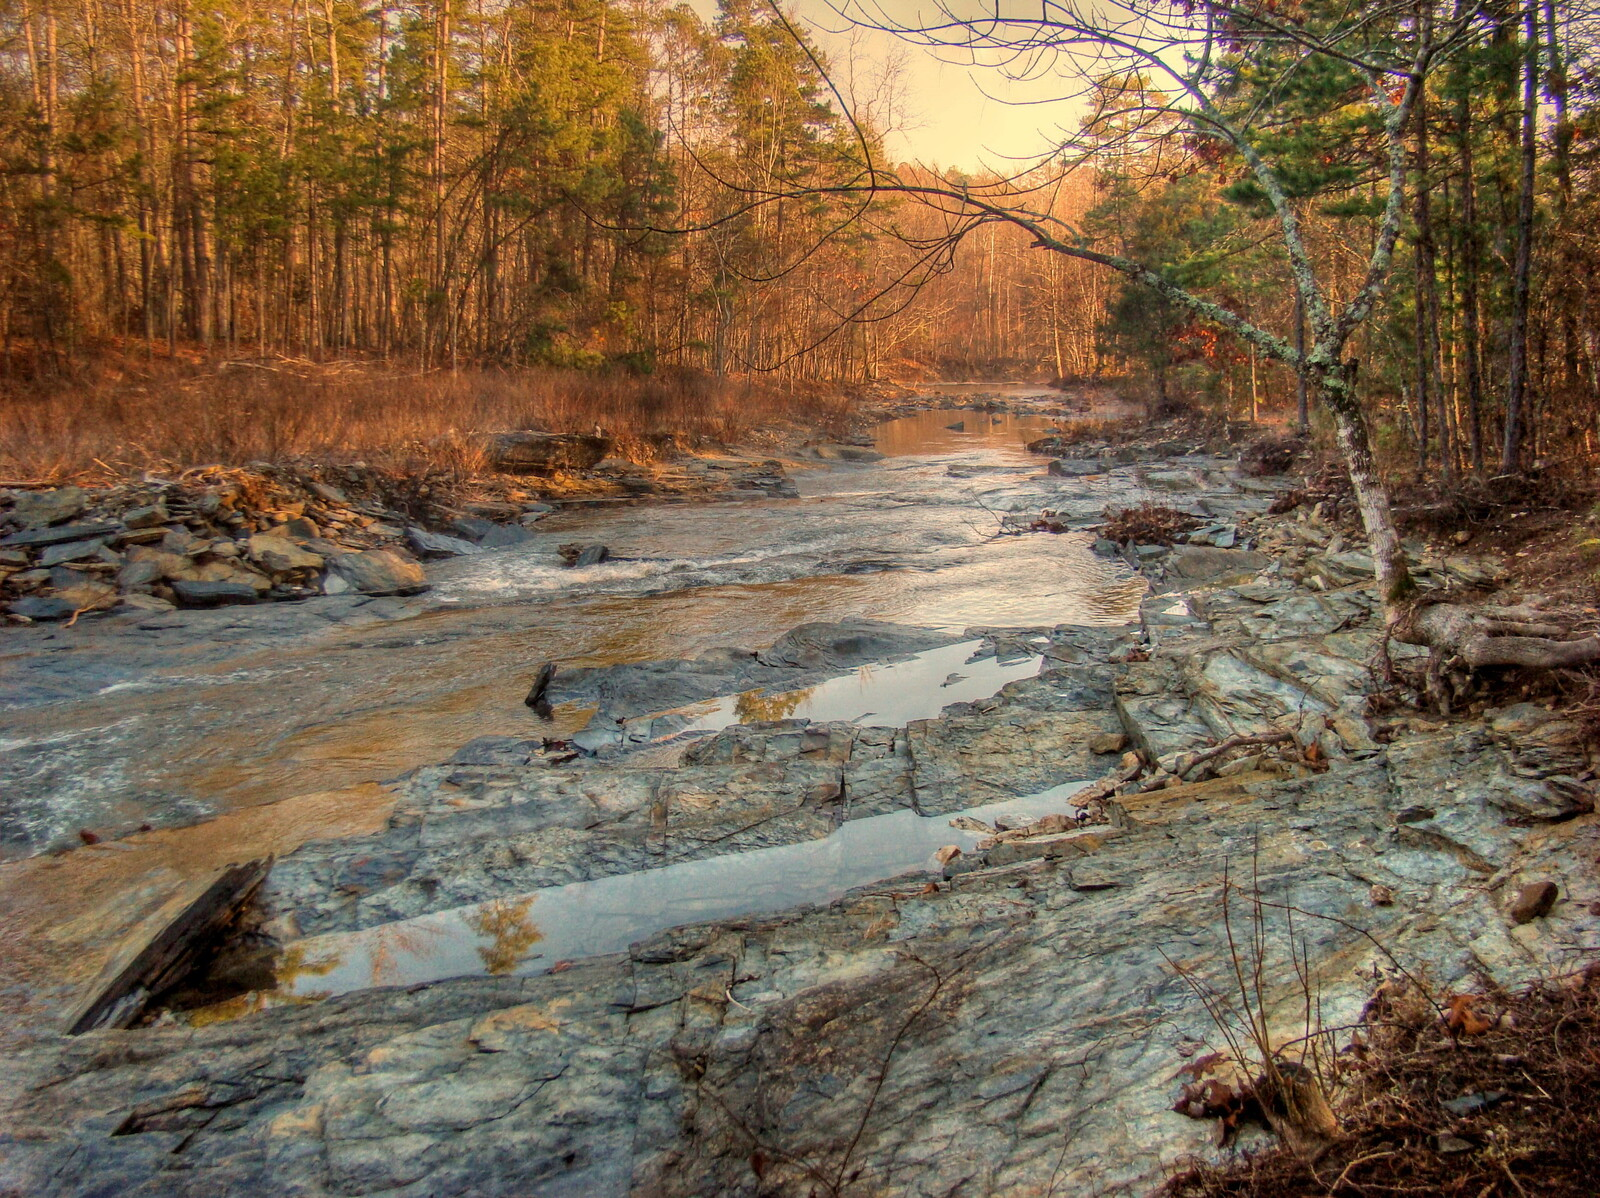 Creek in fall with rocky shores and evergreens lining the creek